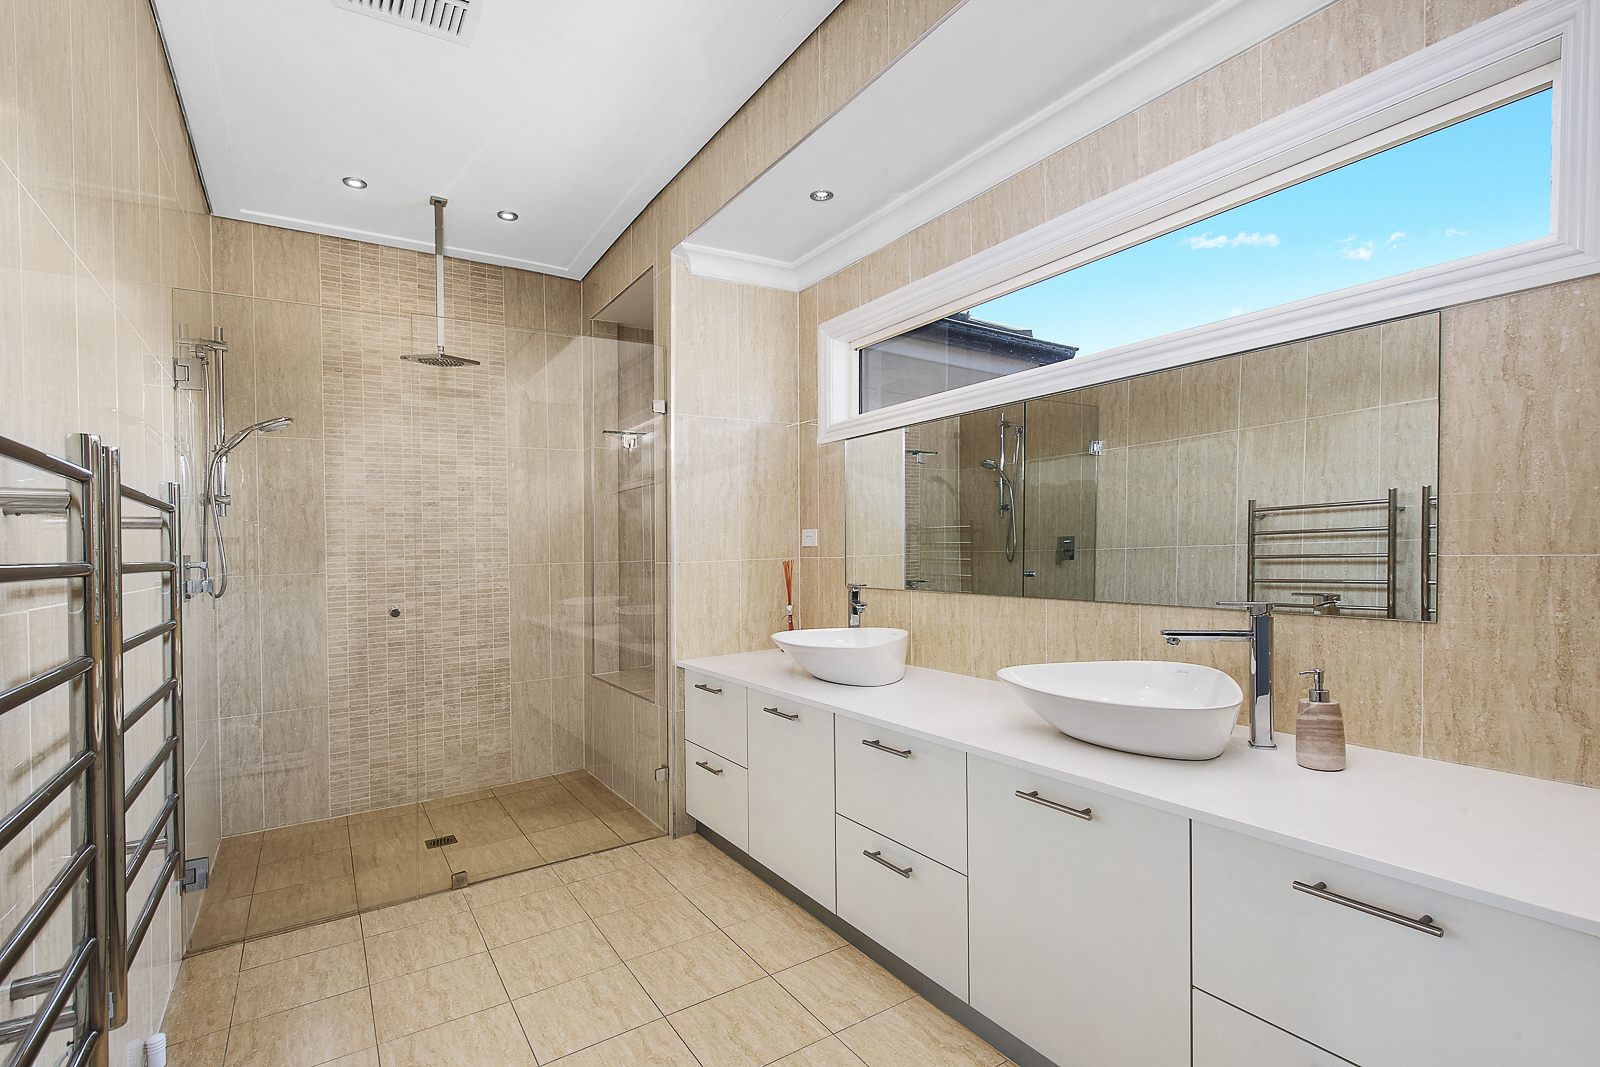 Kiama Shellharbour Gerringong Berry Wollongong South Coast Illawarra Commercial Photographer Property Photograher architectural photographer - bathroom